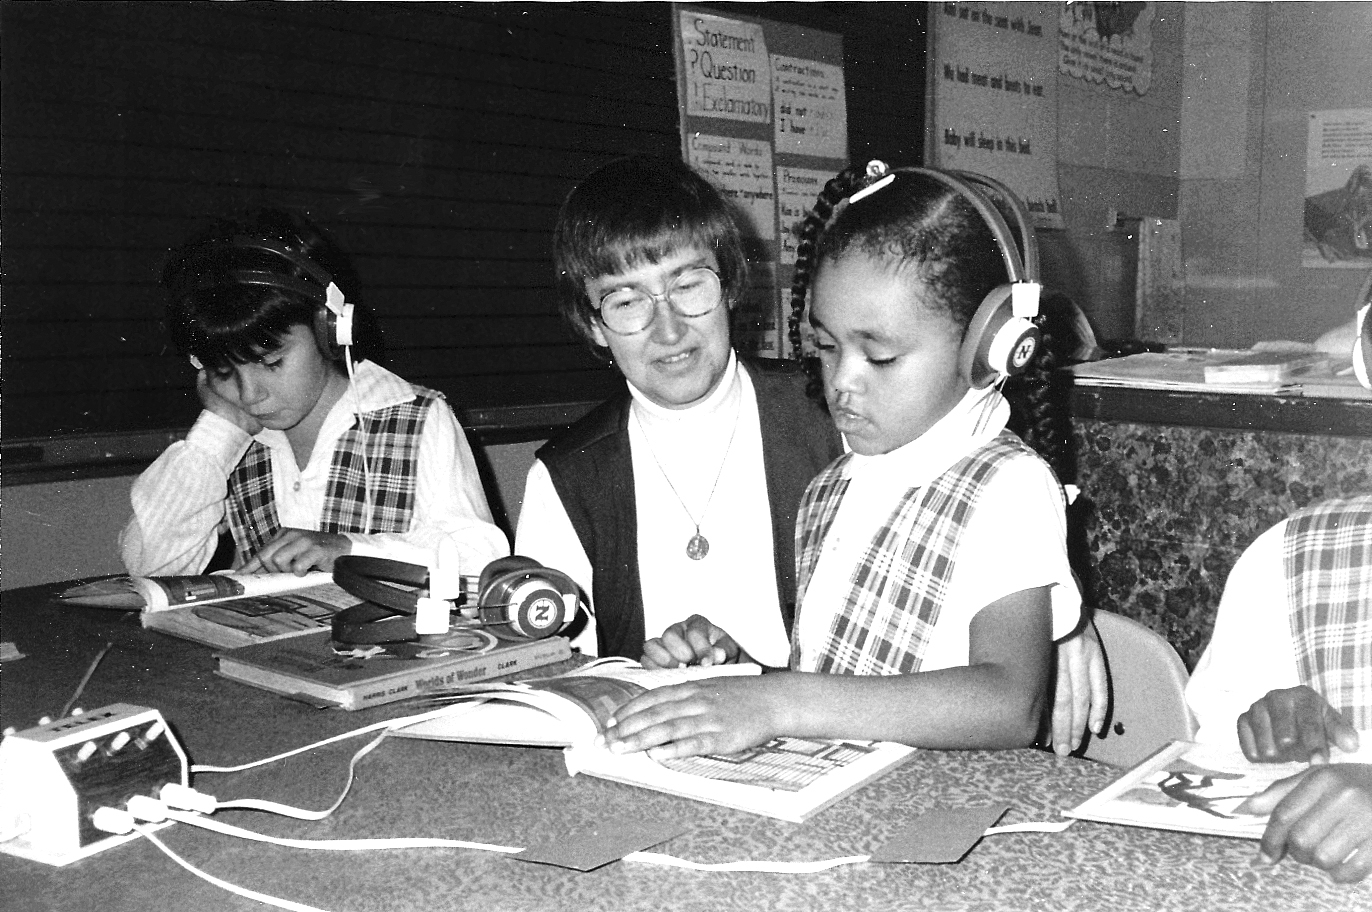 Rev. Joan Wagner with students in the 1980s